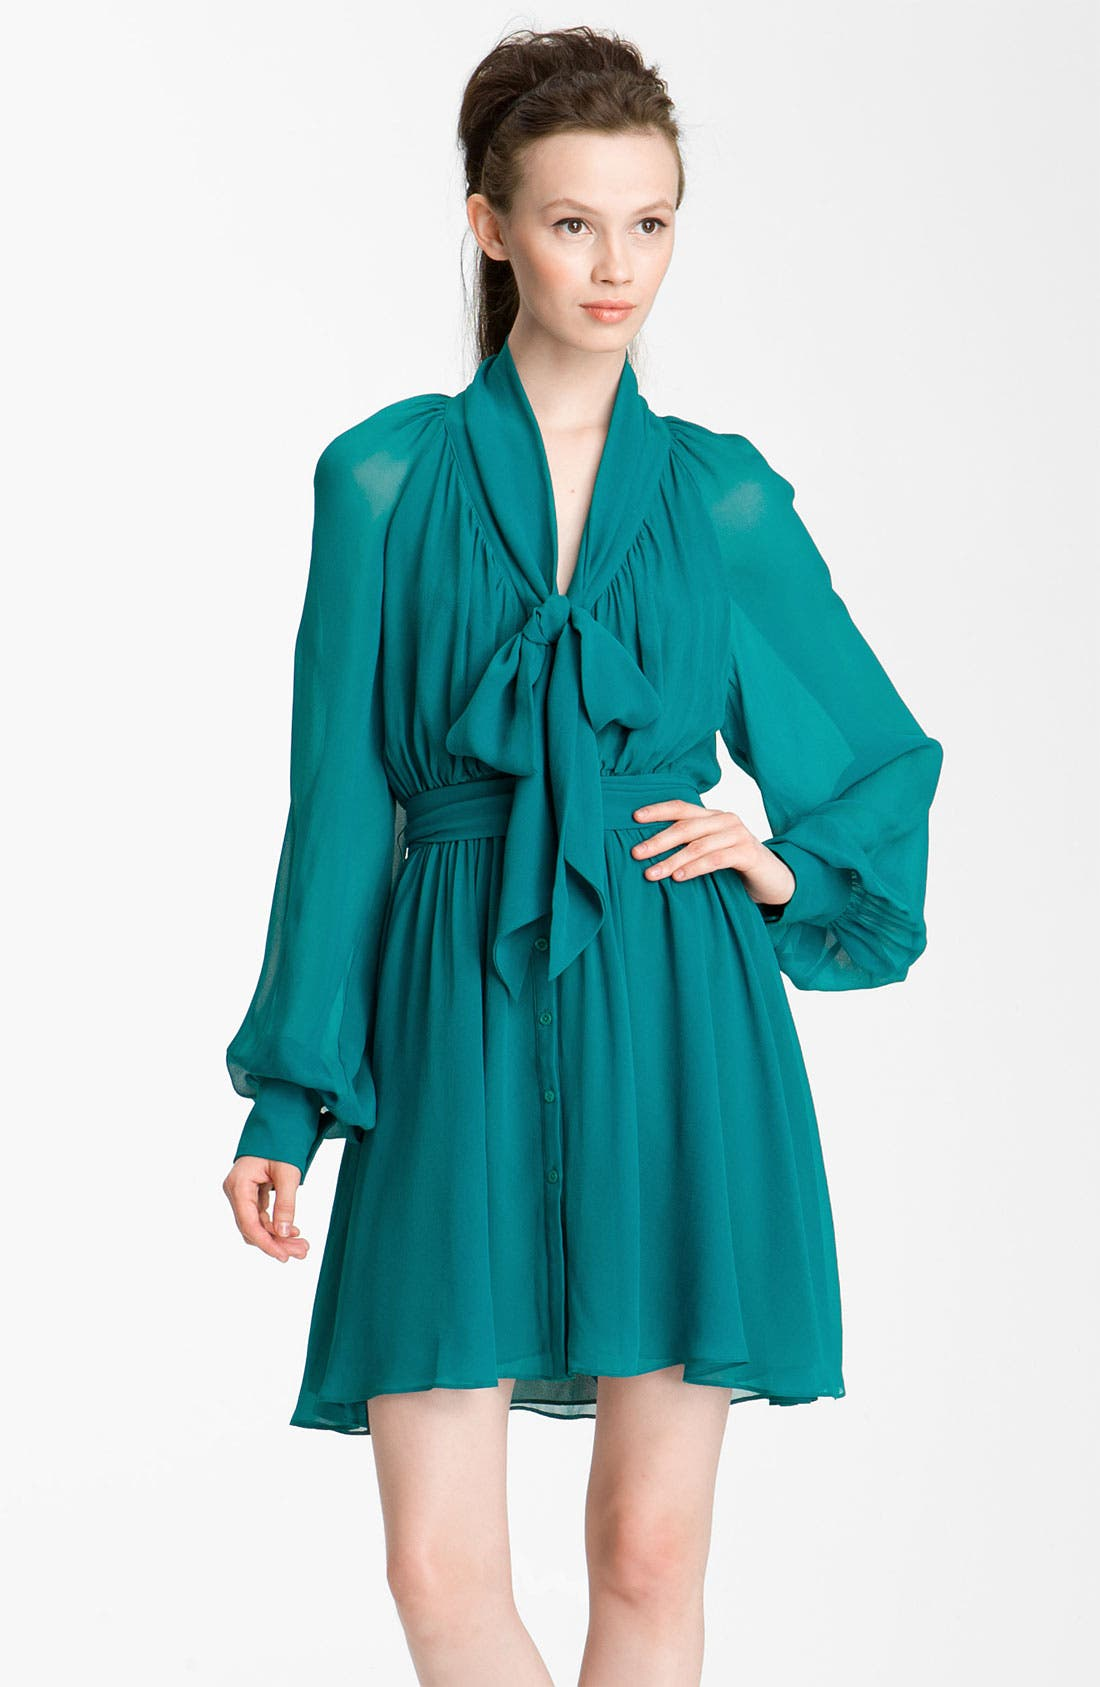 Alternate Image 1 Selected - Rachel Zoe 'Arielle' Bishop Sleeve Dress